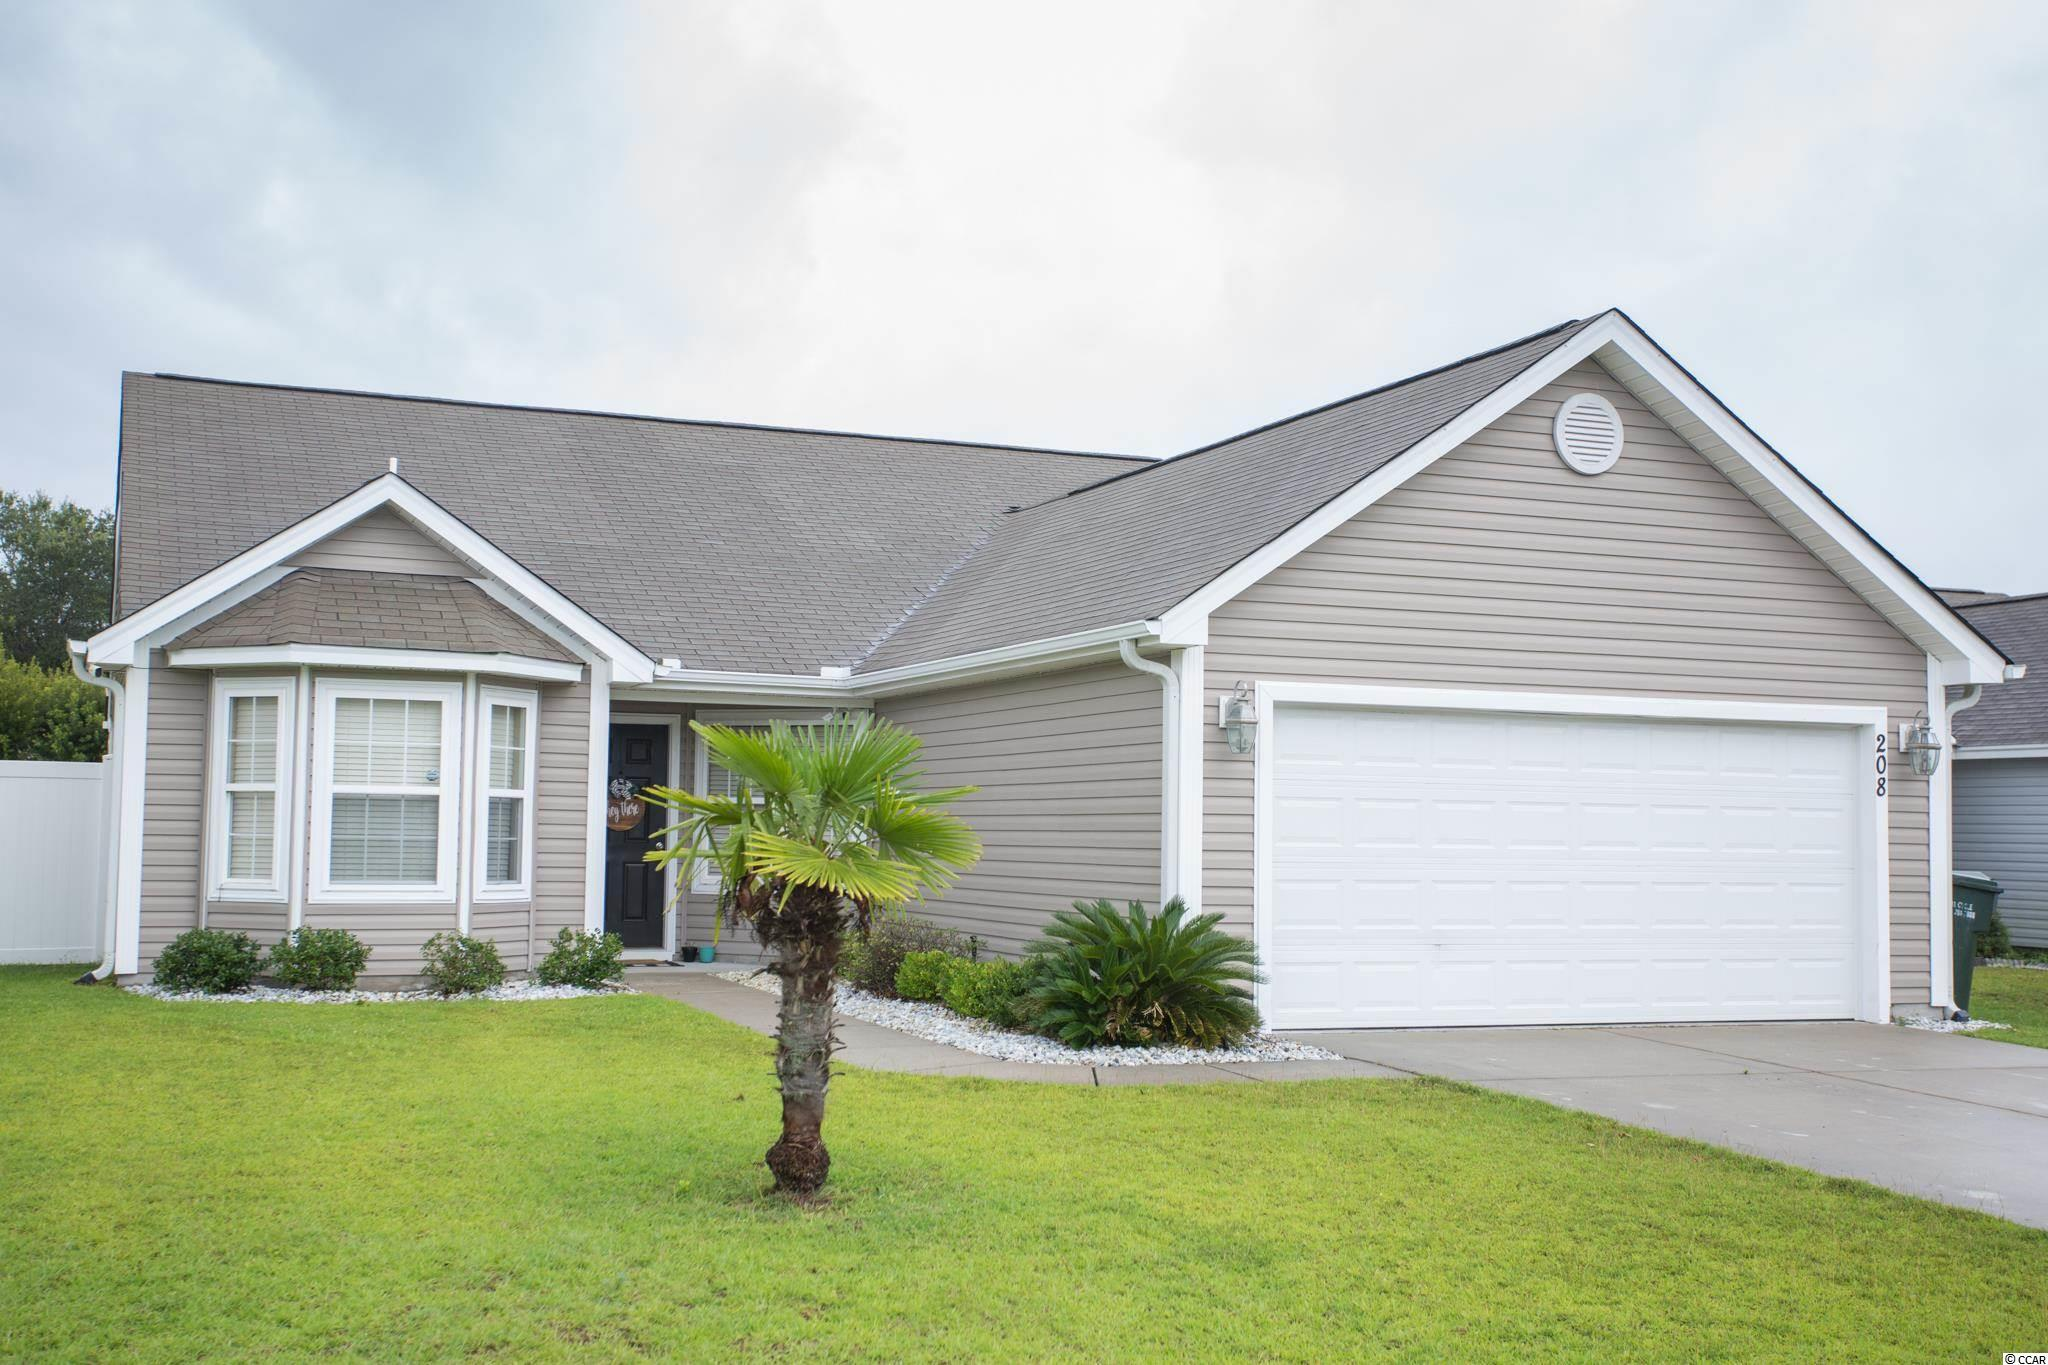 Popular Beazer Monticello floorplan.  3 bedrooms, 2 full baths, tile and carpet.  Vaulted ceilings in the Living Room and Master Suite.  Master features his and her closets.  Master bath with Jacuzzi tub and separate shower.  All appliances convey with the exception of the washer and dryer.  Fantastic Carolina Forest location close to all amenities, dining, shopping, beaches, golf and the popular Market Commons.